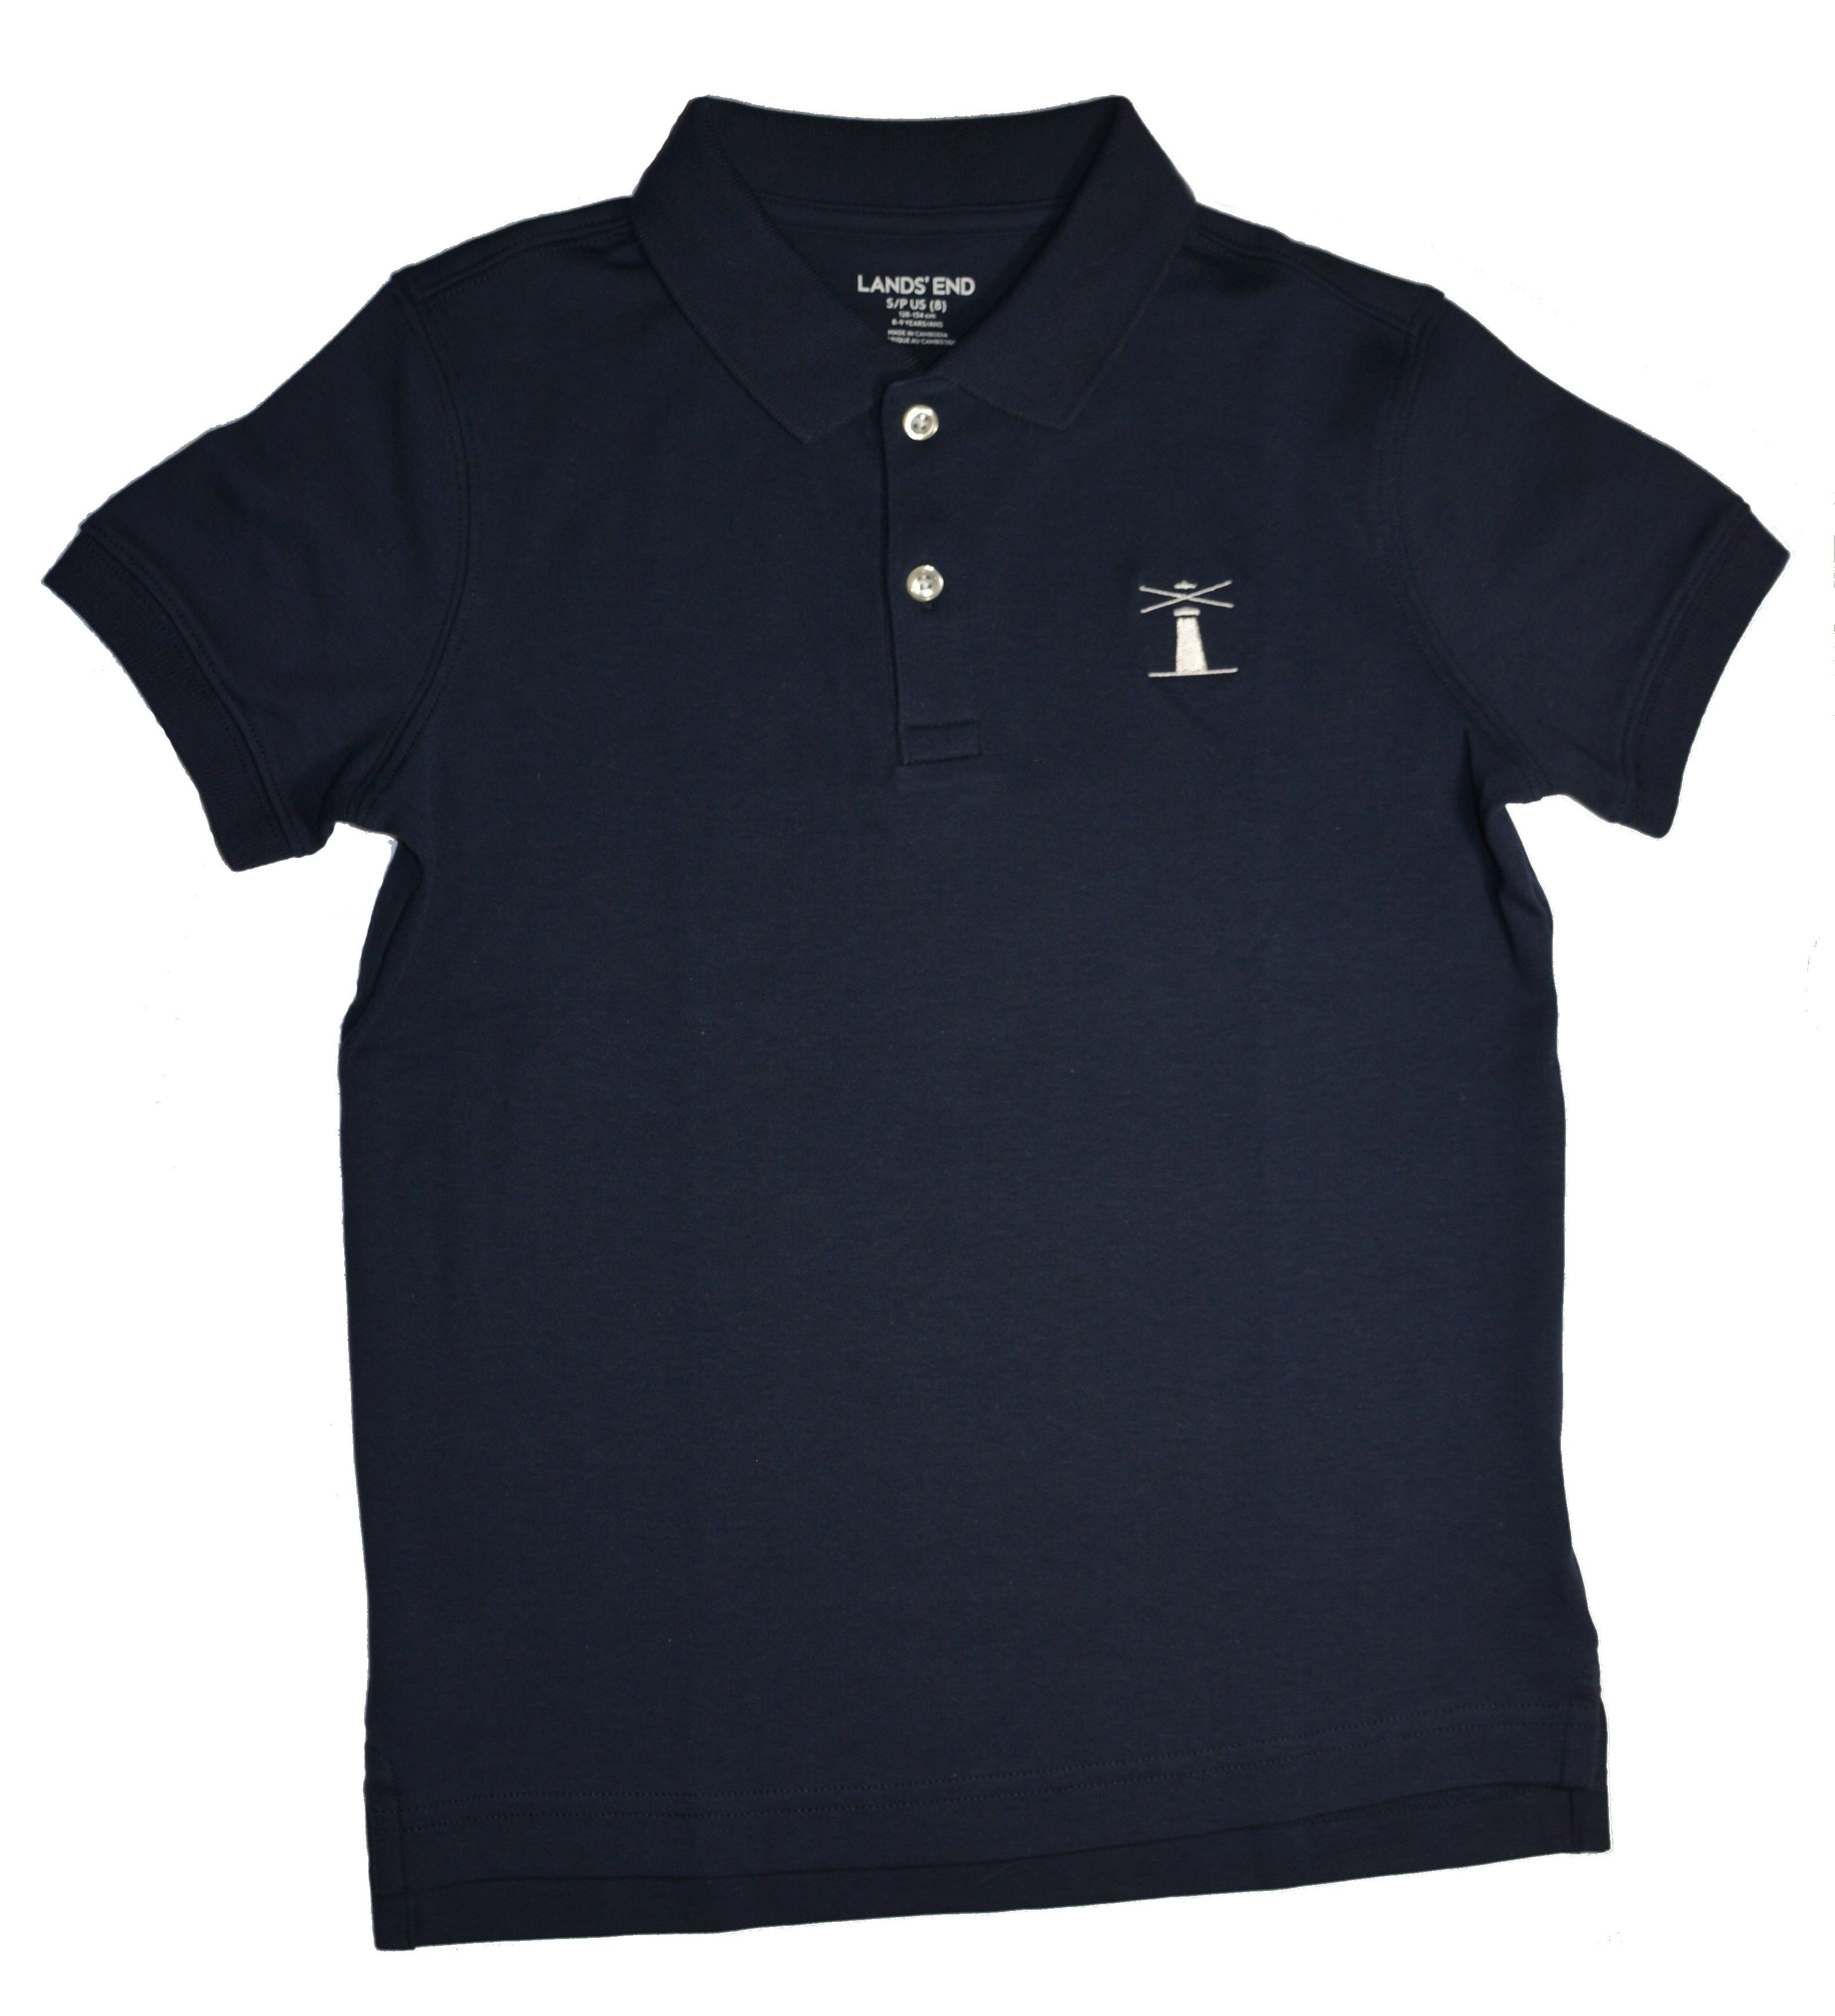 Lands' End Polo